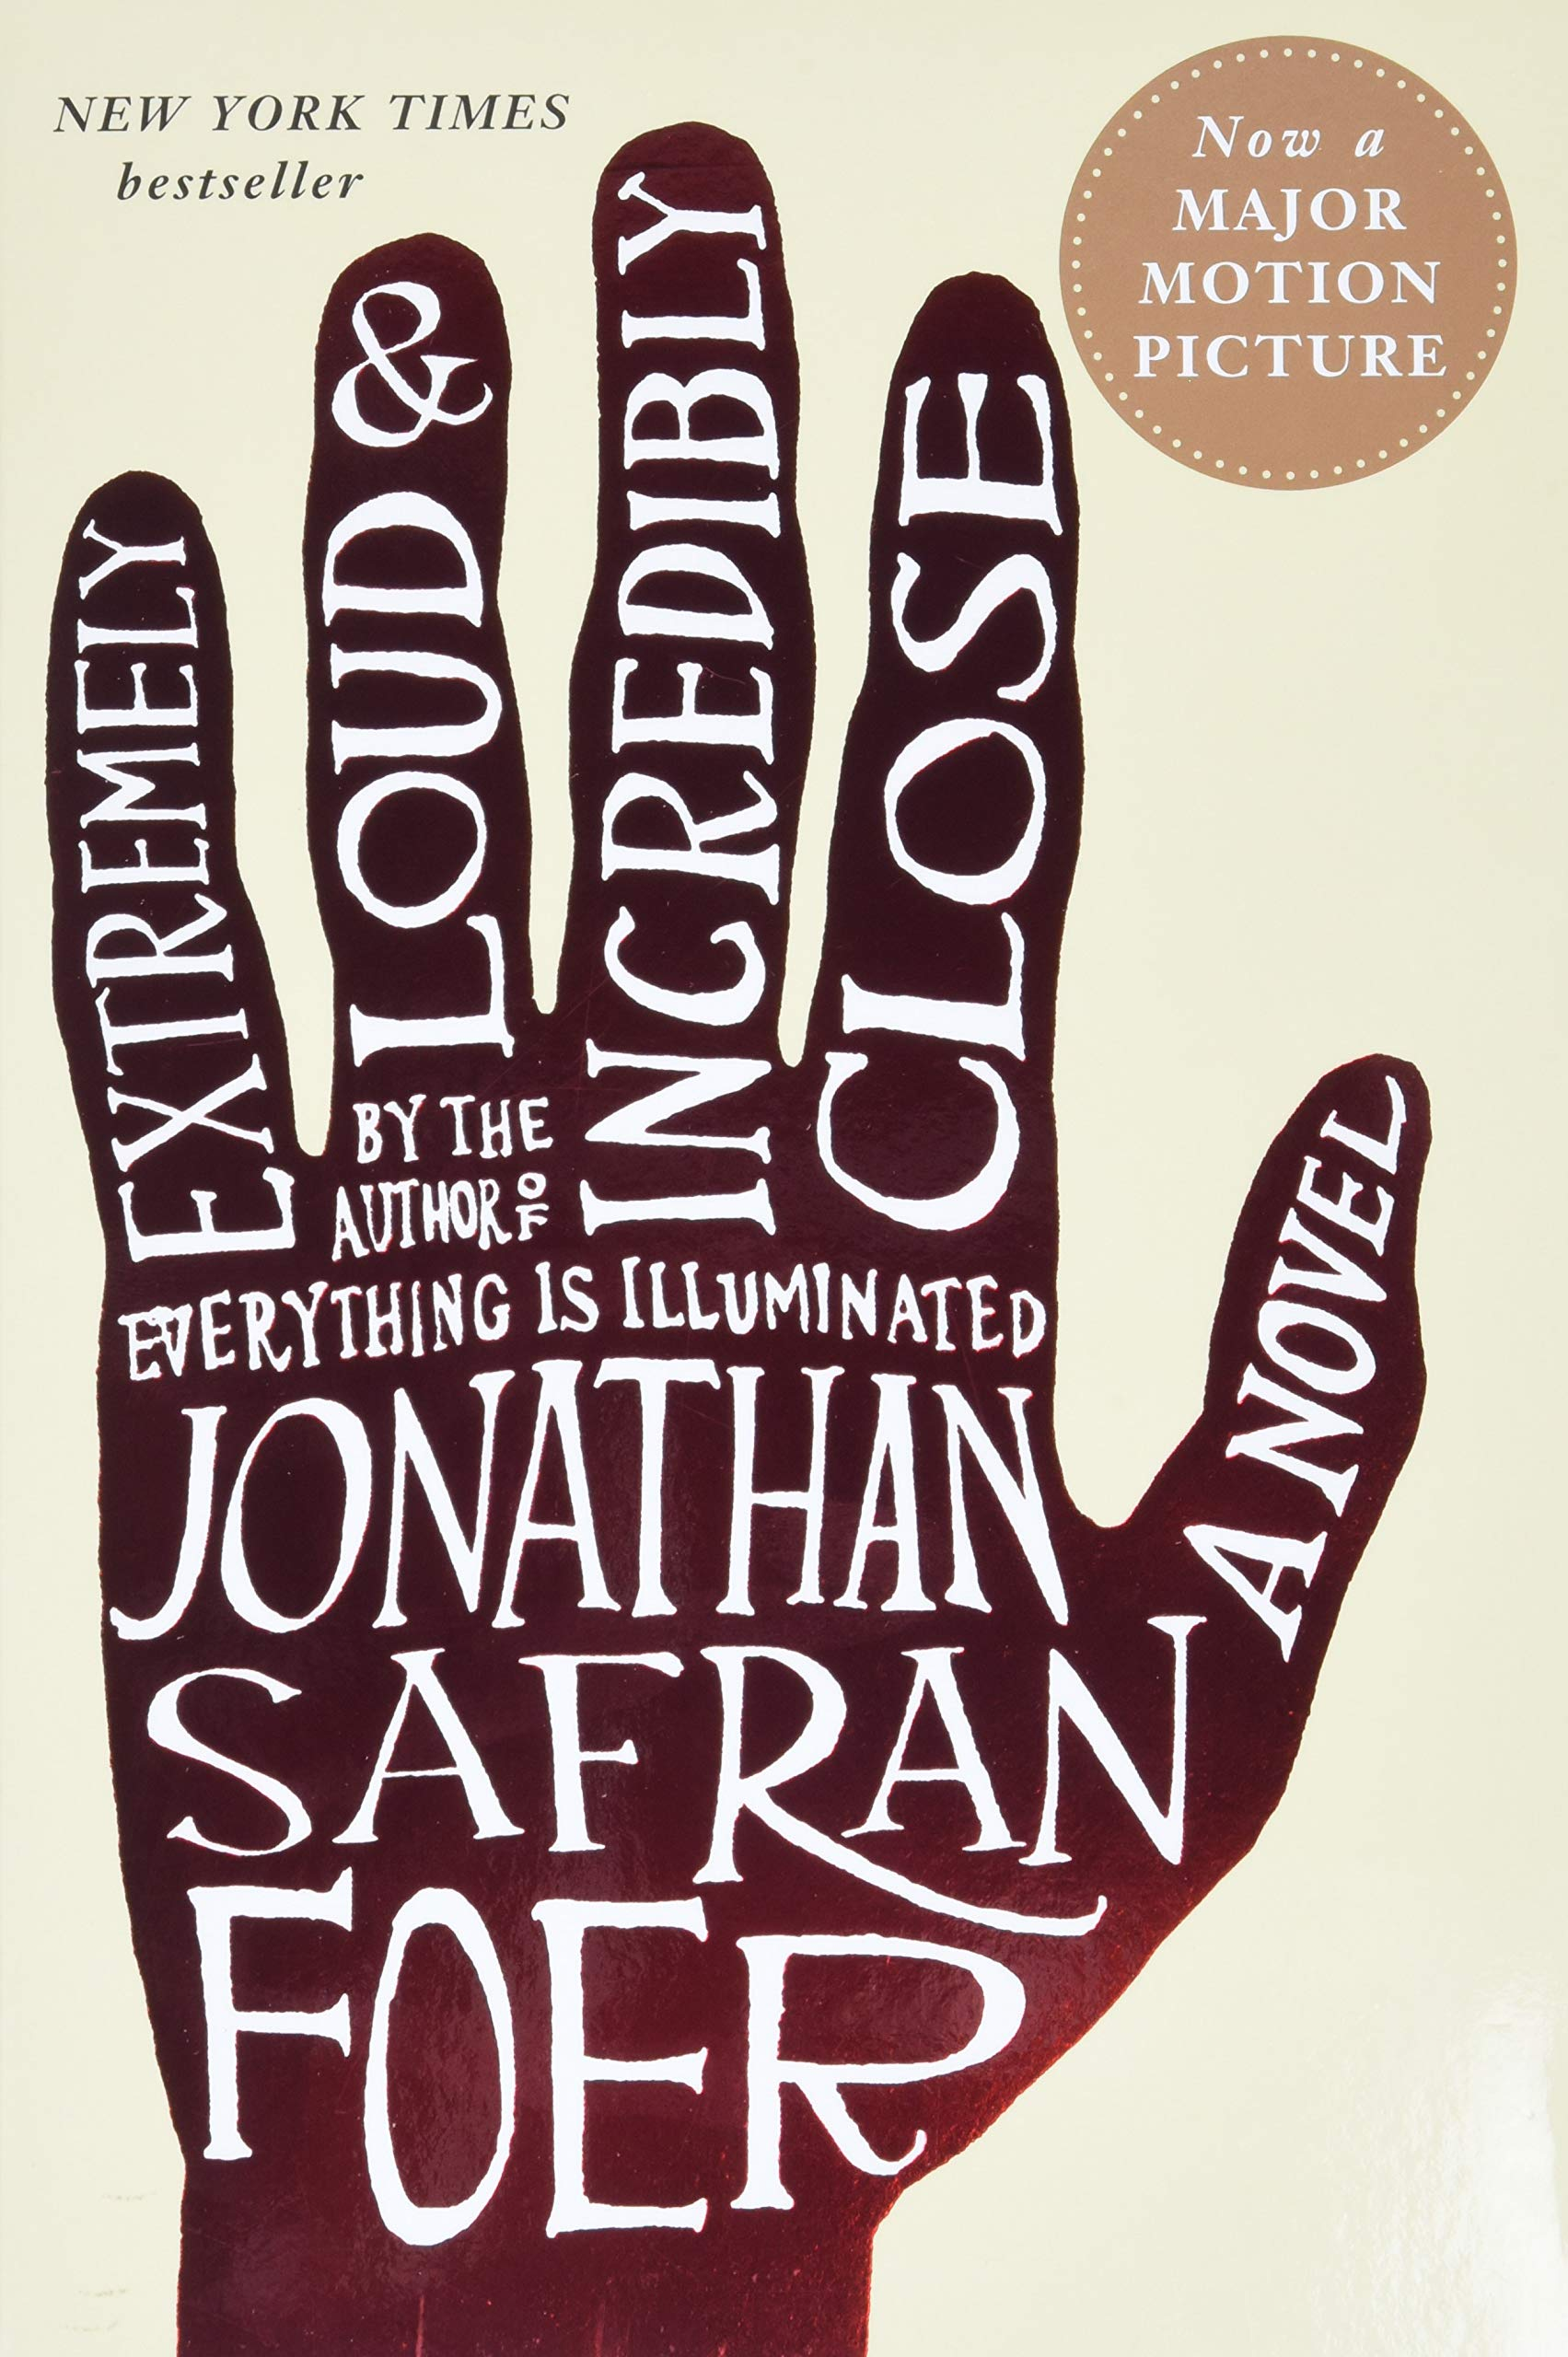 Extremely Loud and Incredibly Close by Jonathan Safran Foer - Book for teens